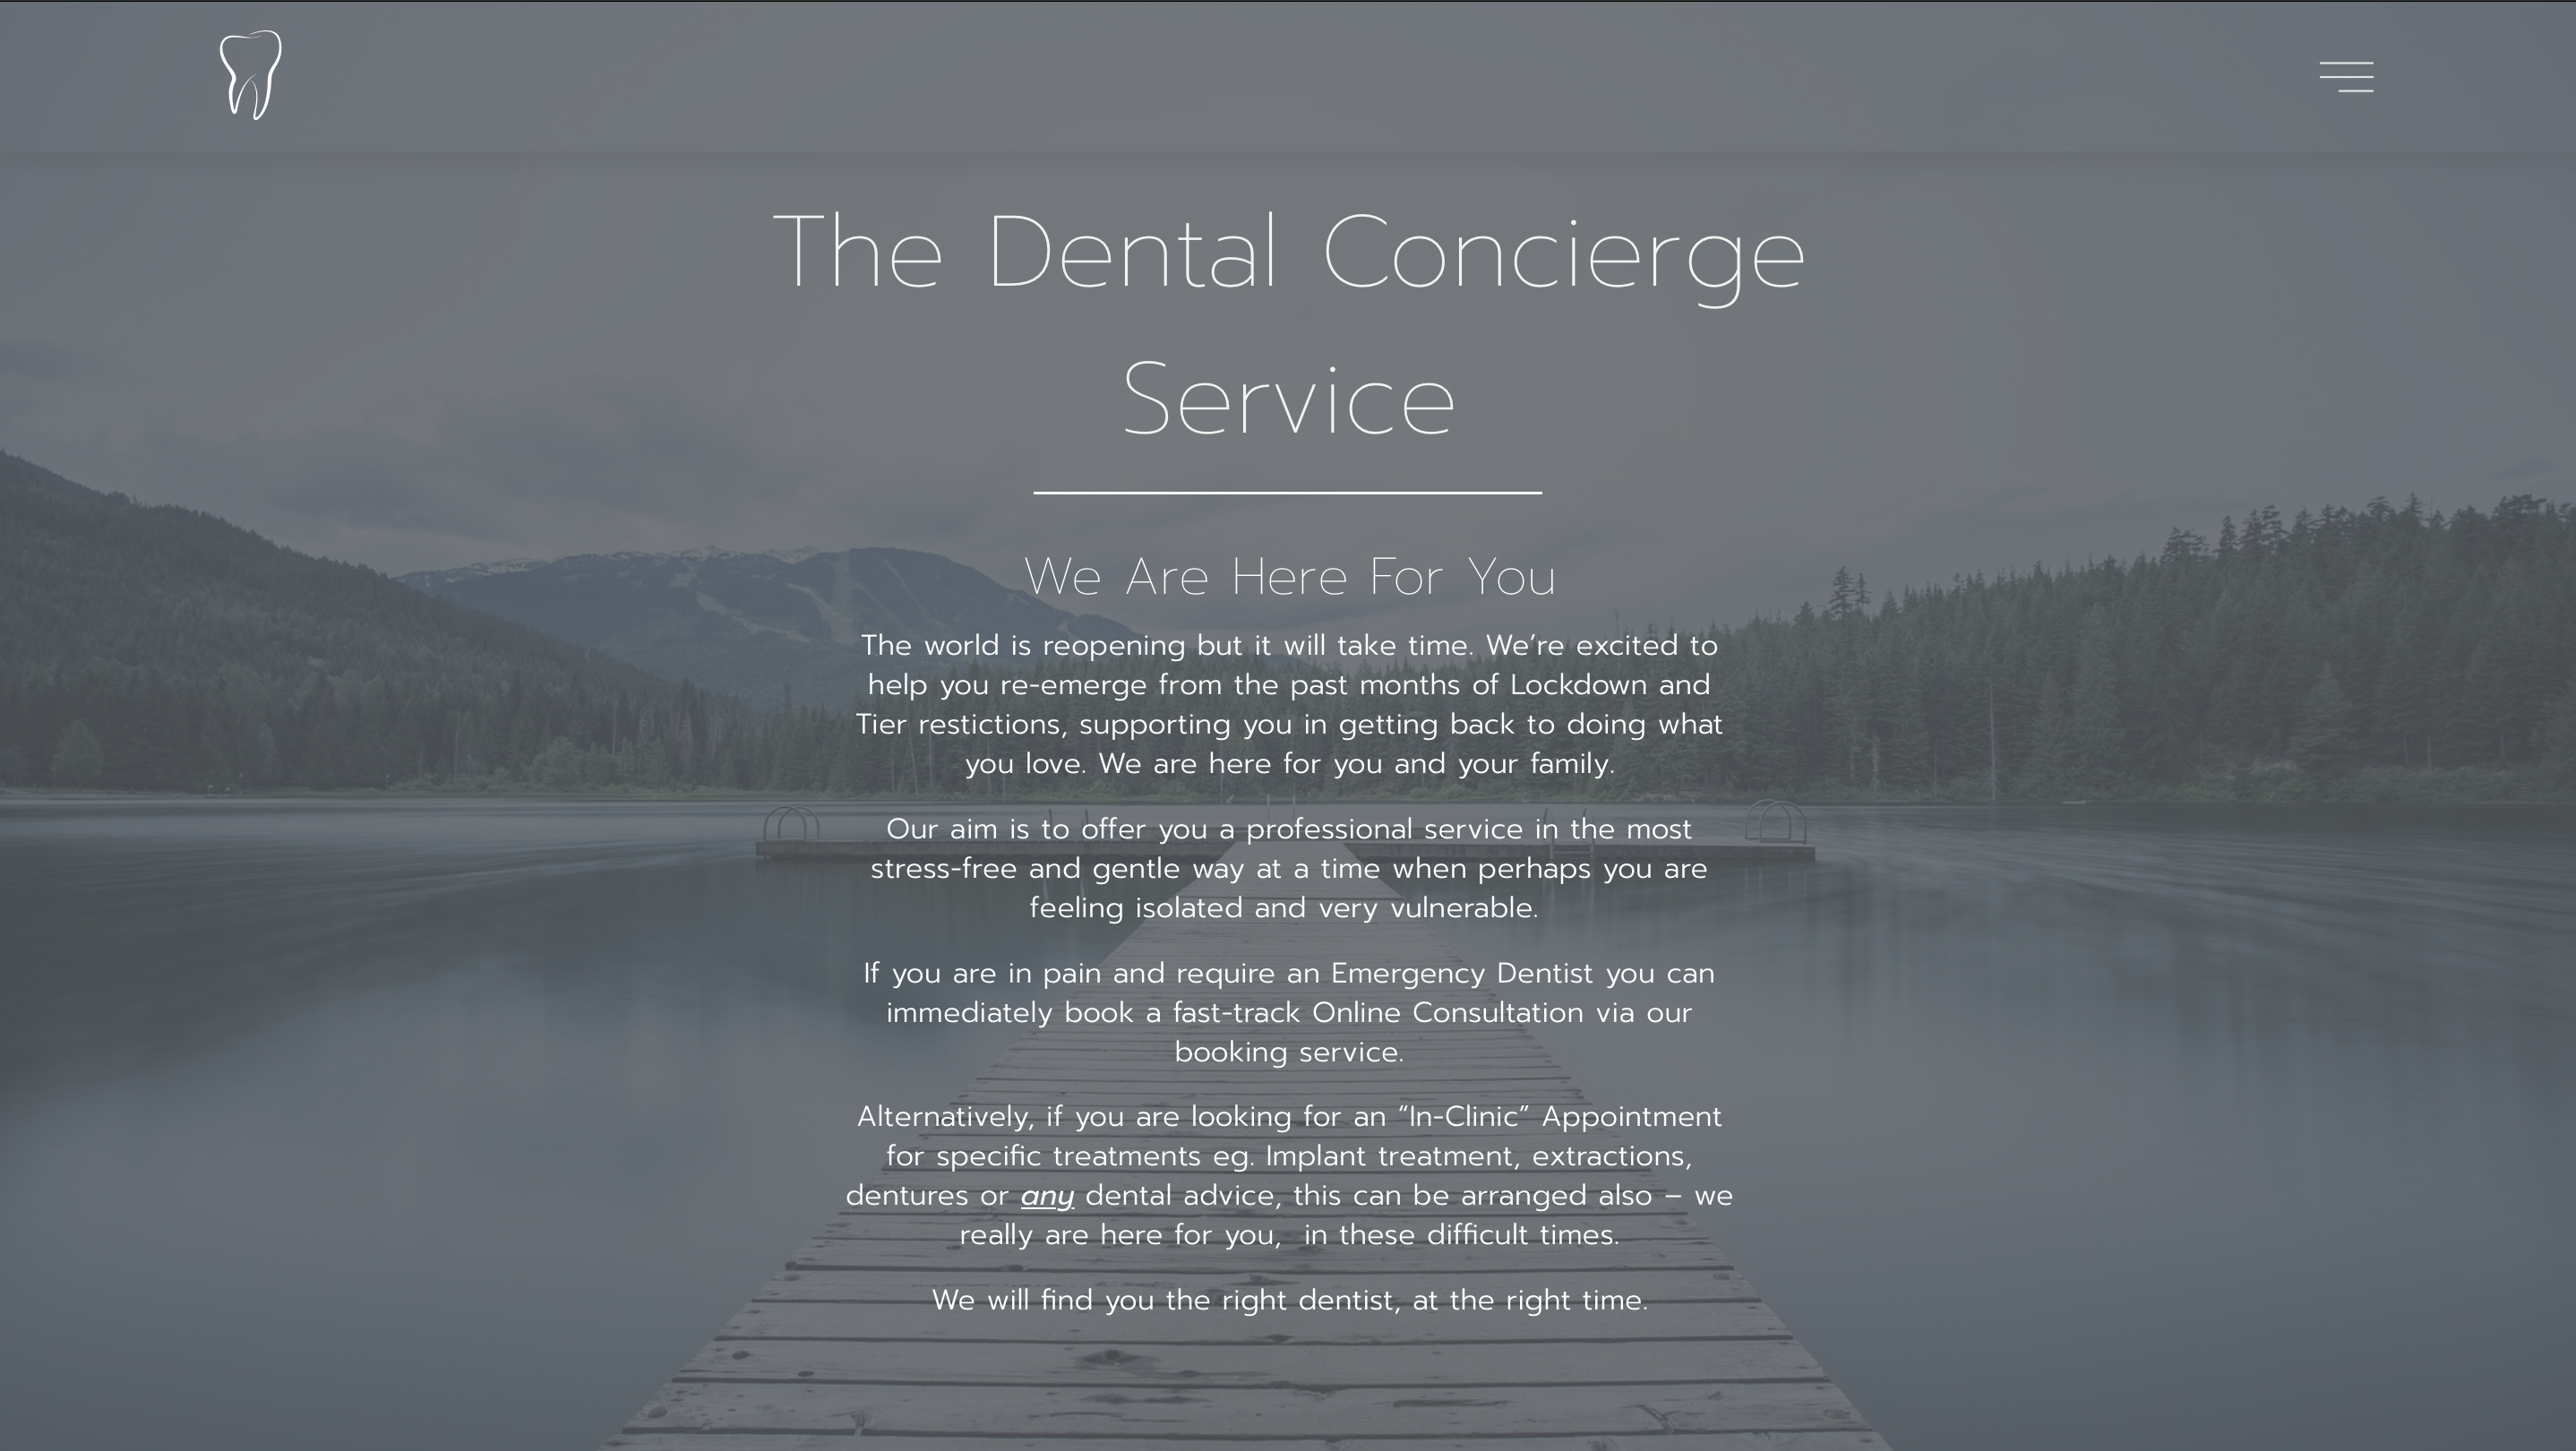 The Dental Concierge Service Smart Web Health